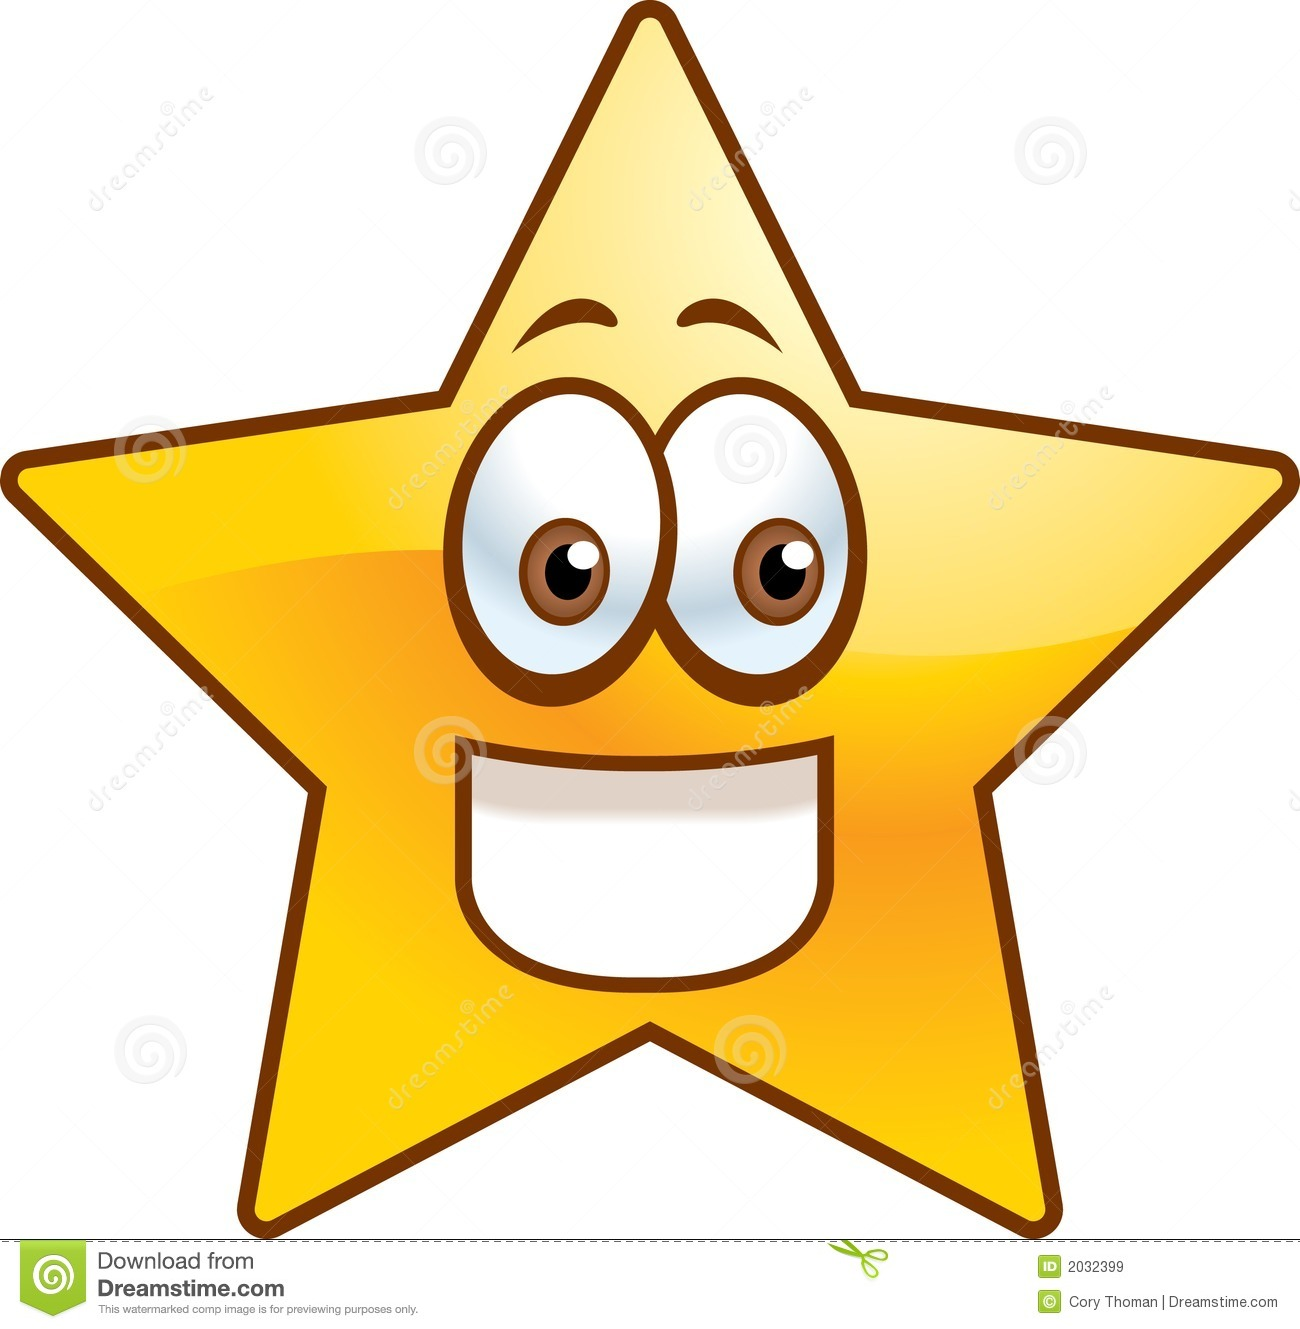 Star Shapes Clipart Free.